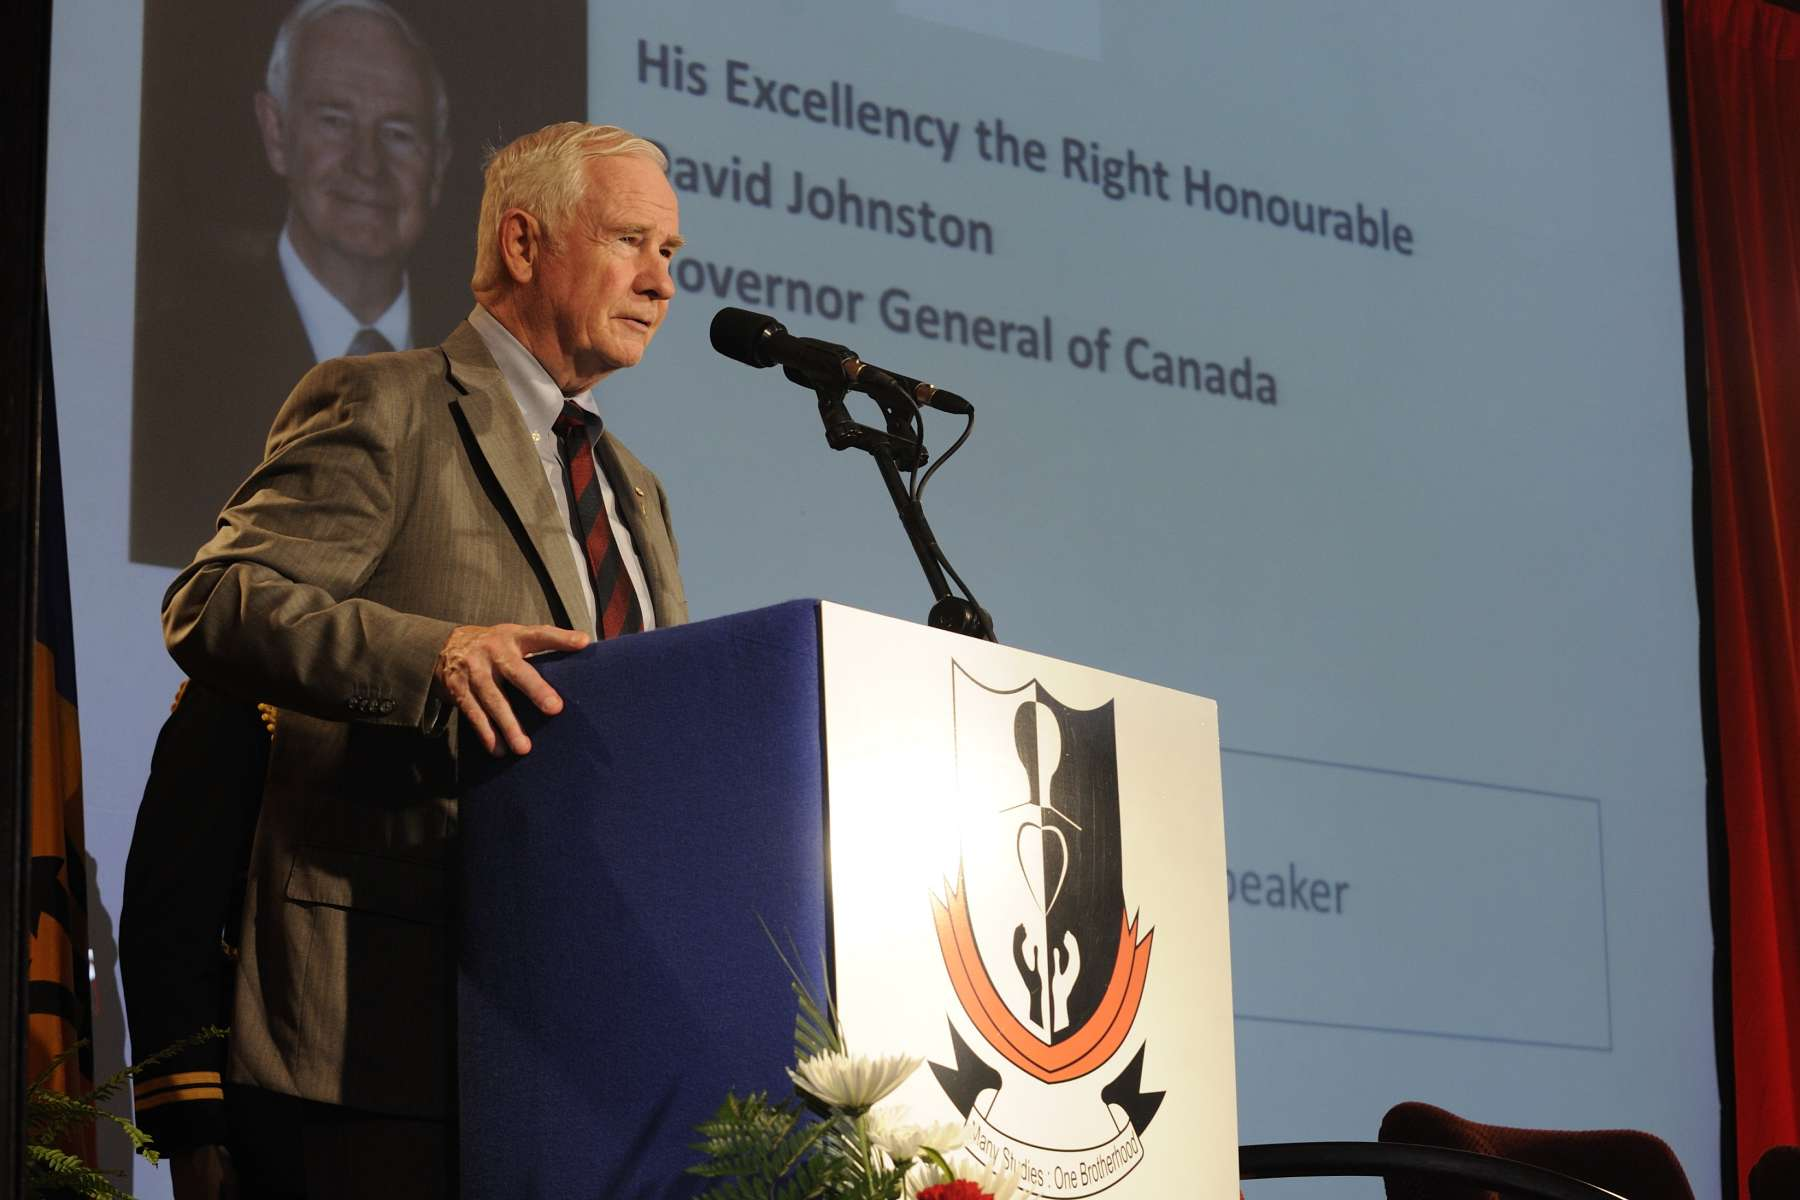 The Governor General visited Barbados Community College where he delivered a speech to students, academics and Canadian institutions' alumni on Canada's and Barbados' education partnerships.